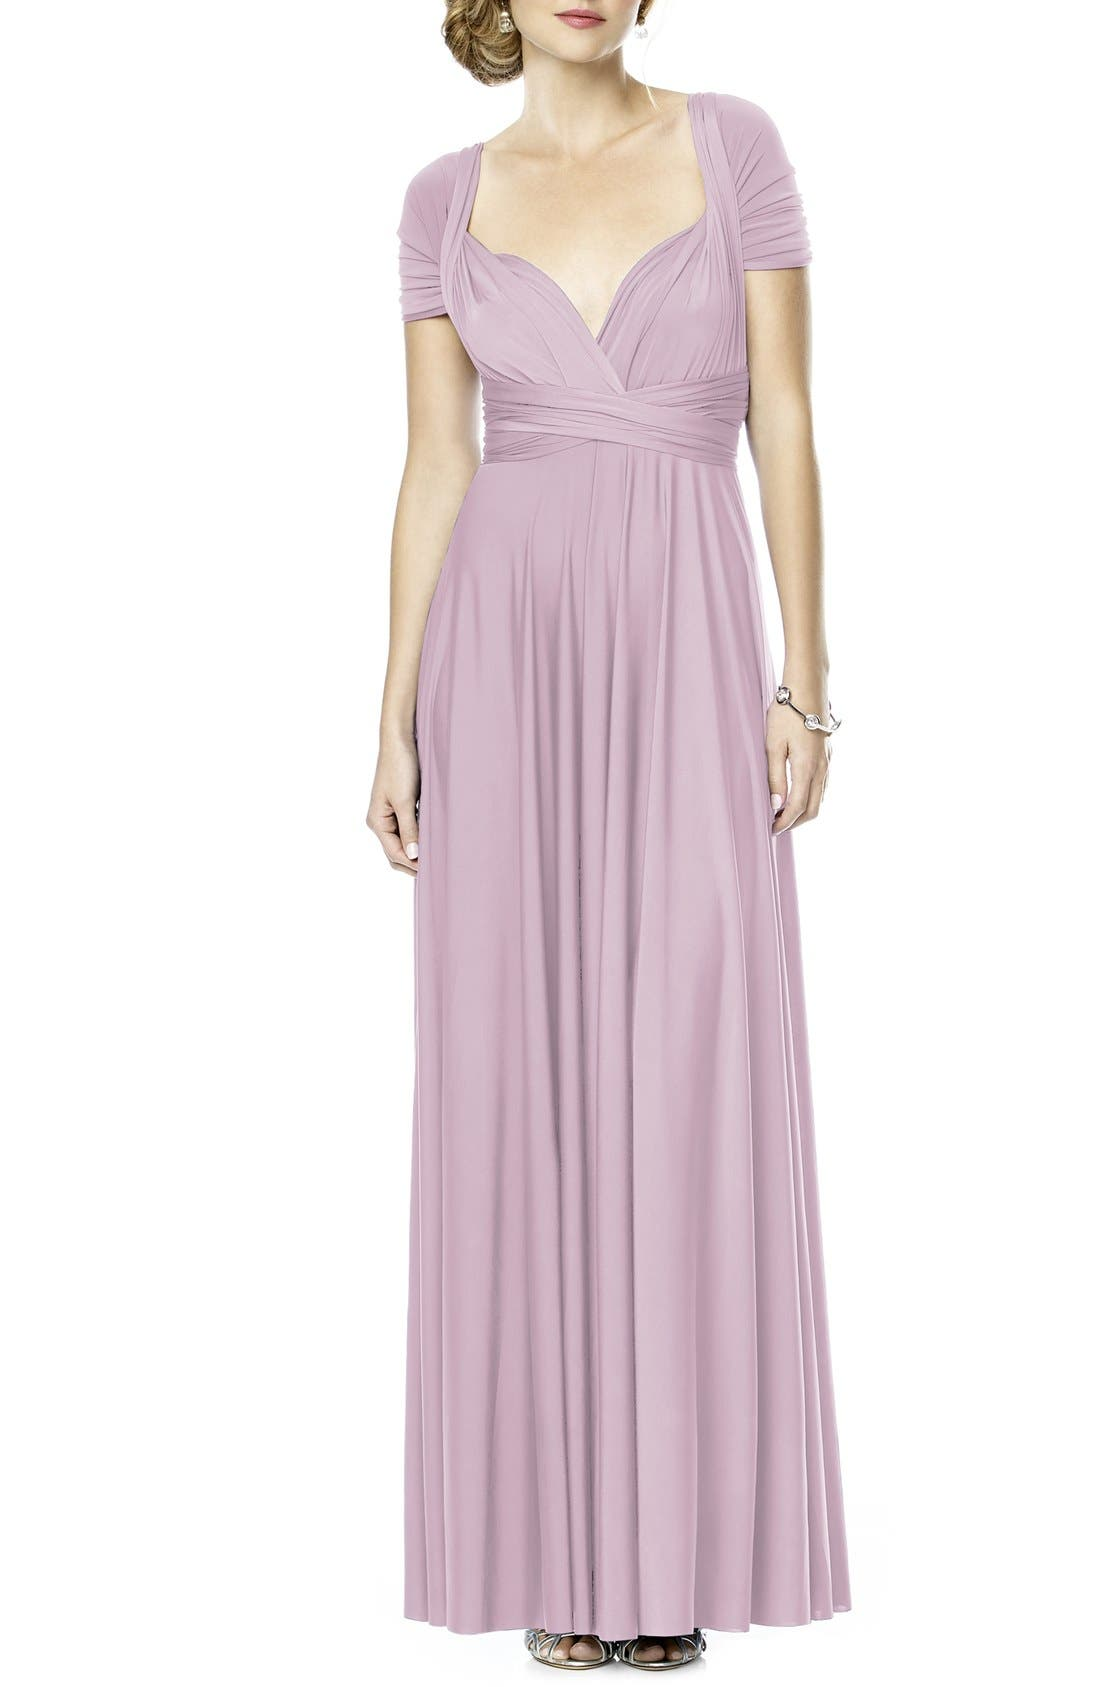 Main Image - Dessy Collection Convertible Wrap Tie Surplice Jersey Gown